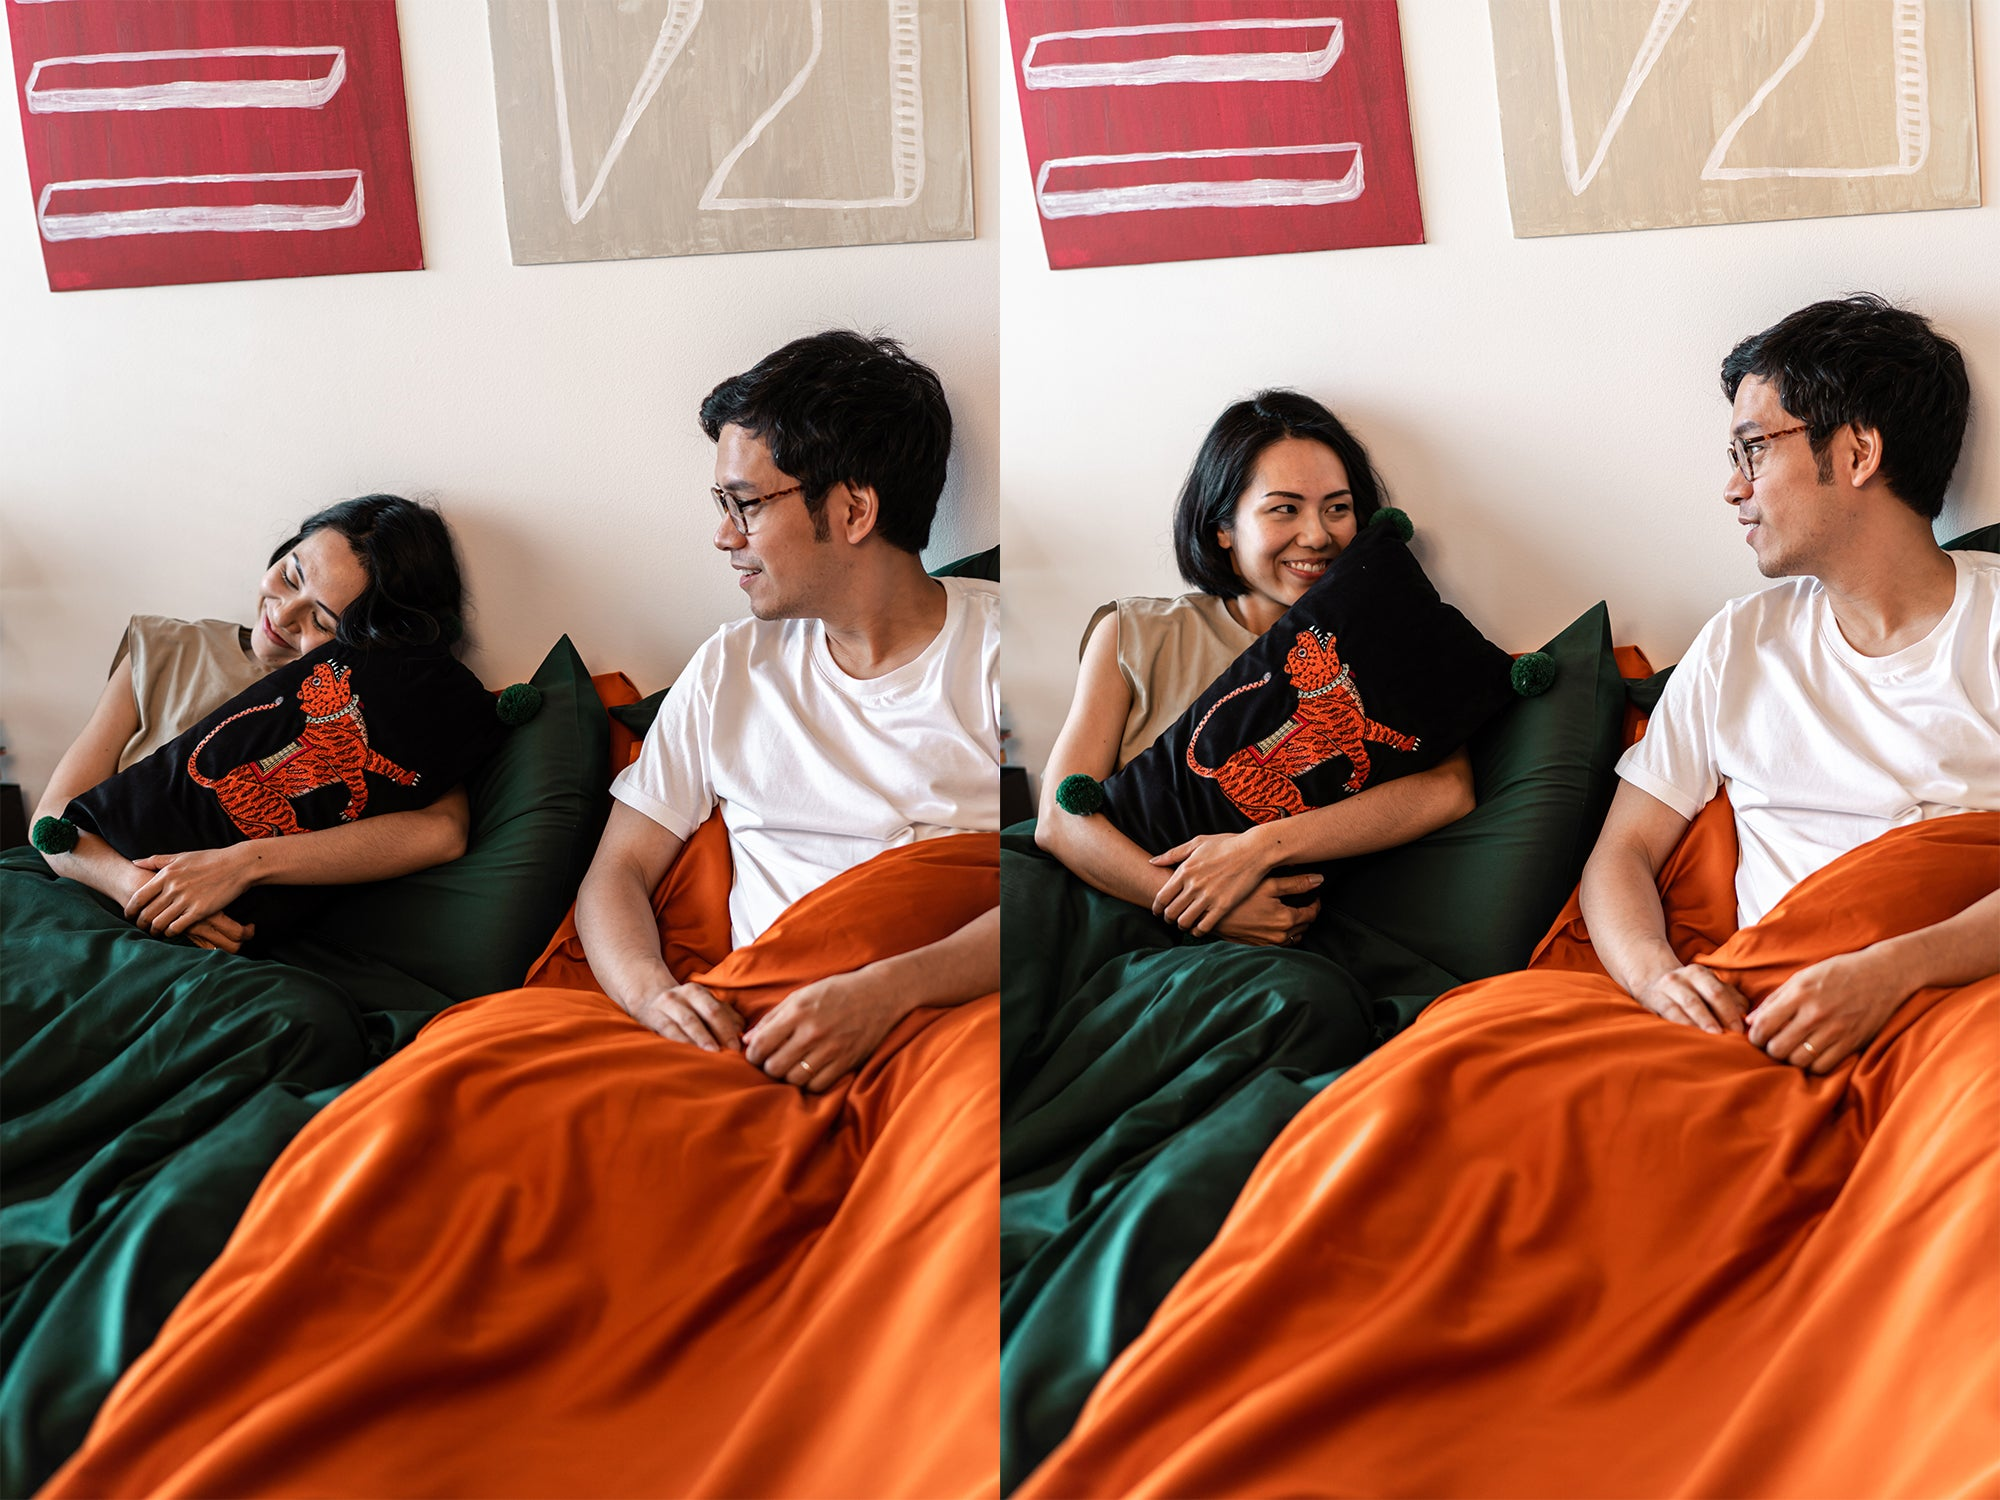 couple in bed with orange and green bedsheets